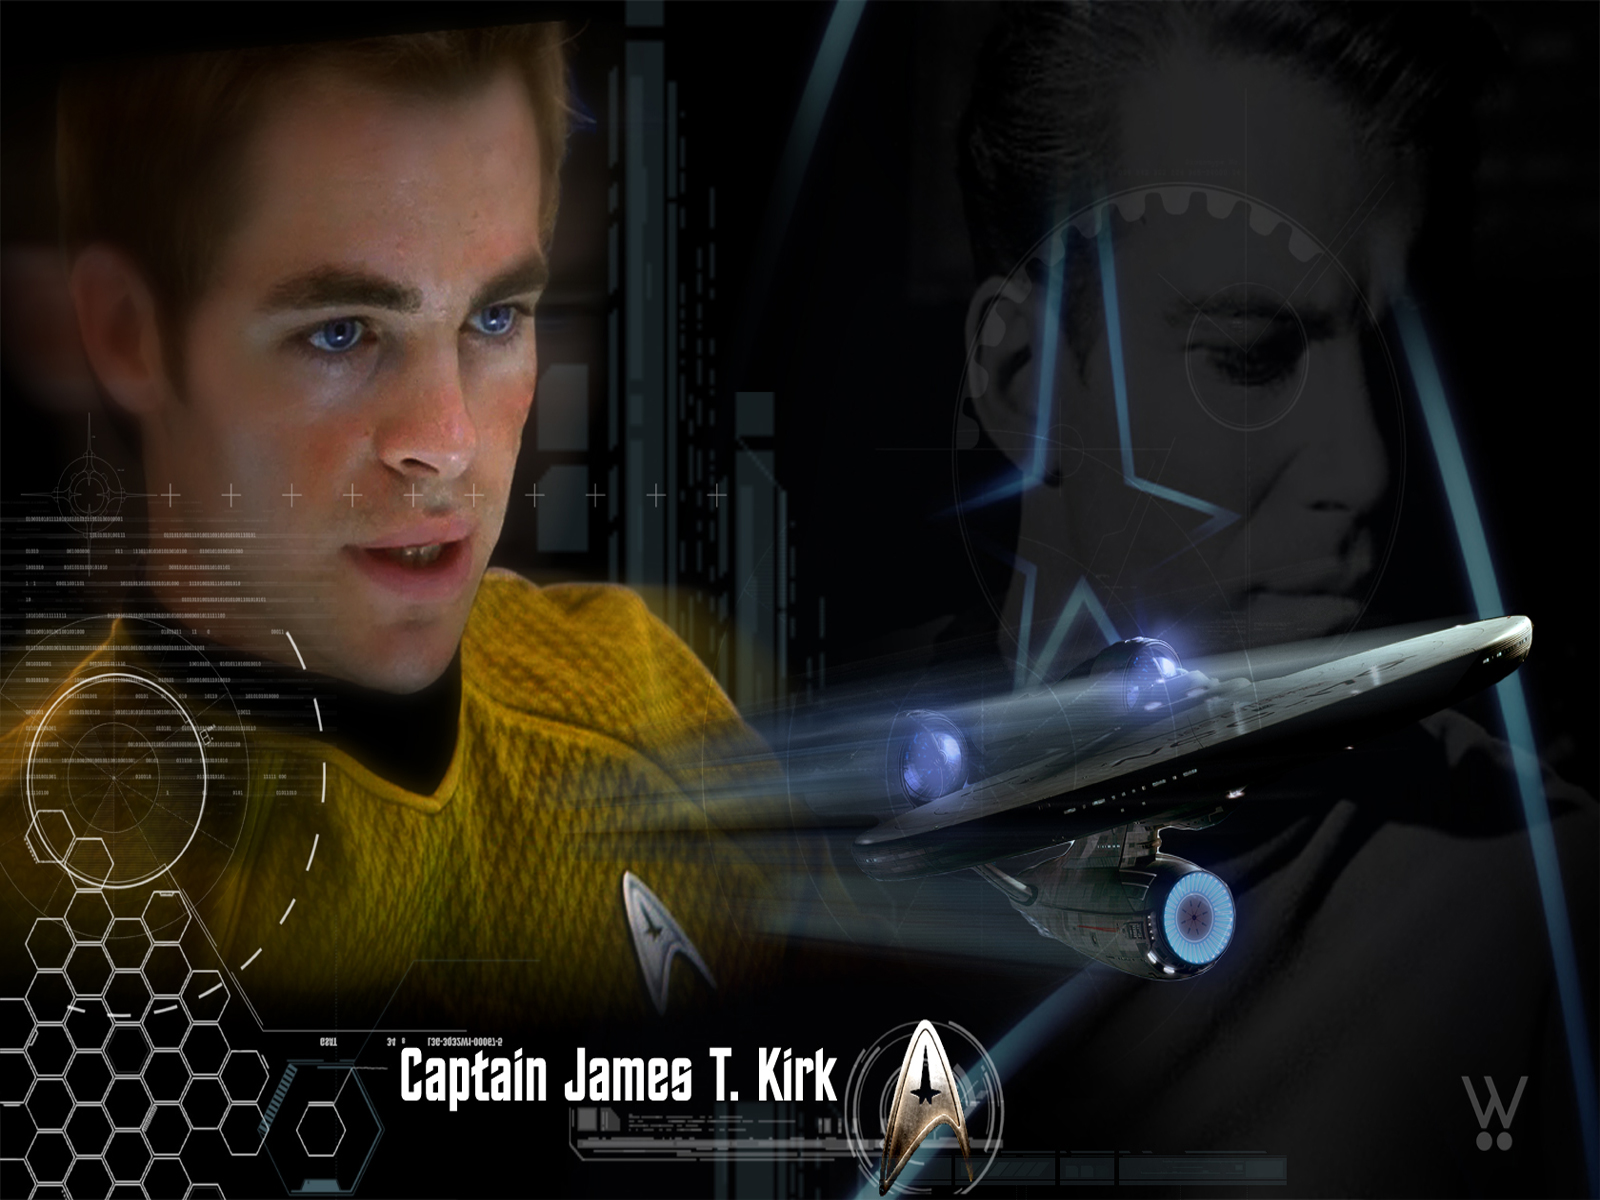 Les vaisseaux de Starfleet Star_Trek_2009_Captain_James_T_Kirk_freecomputerdesktopwallpaper_1600